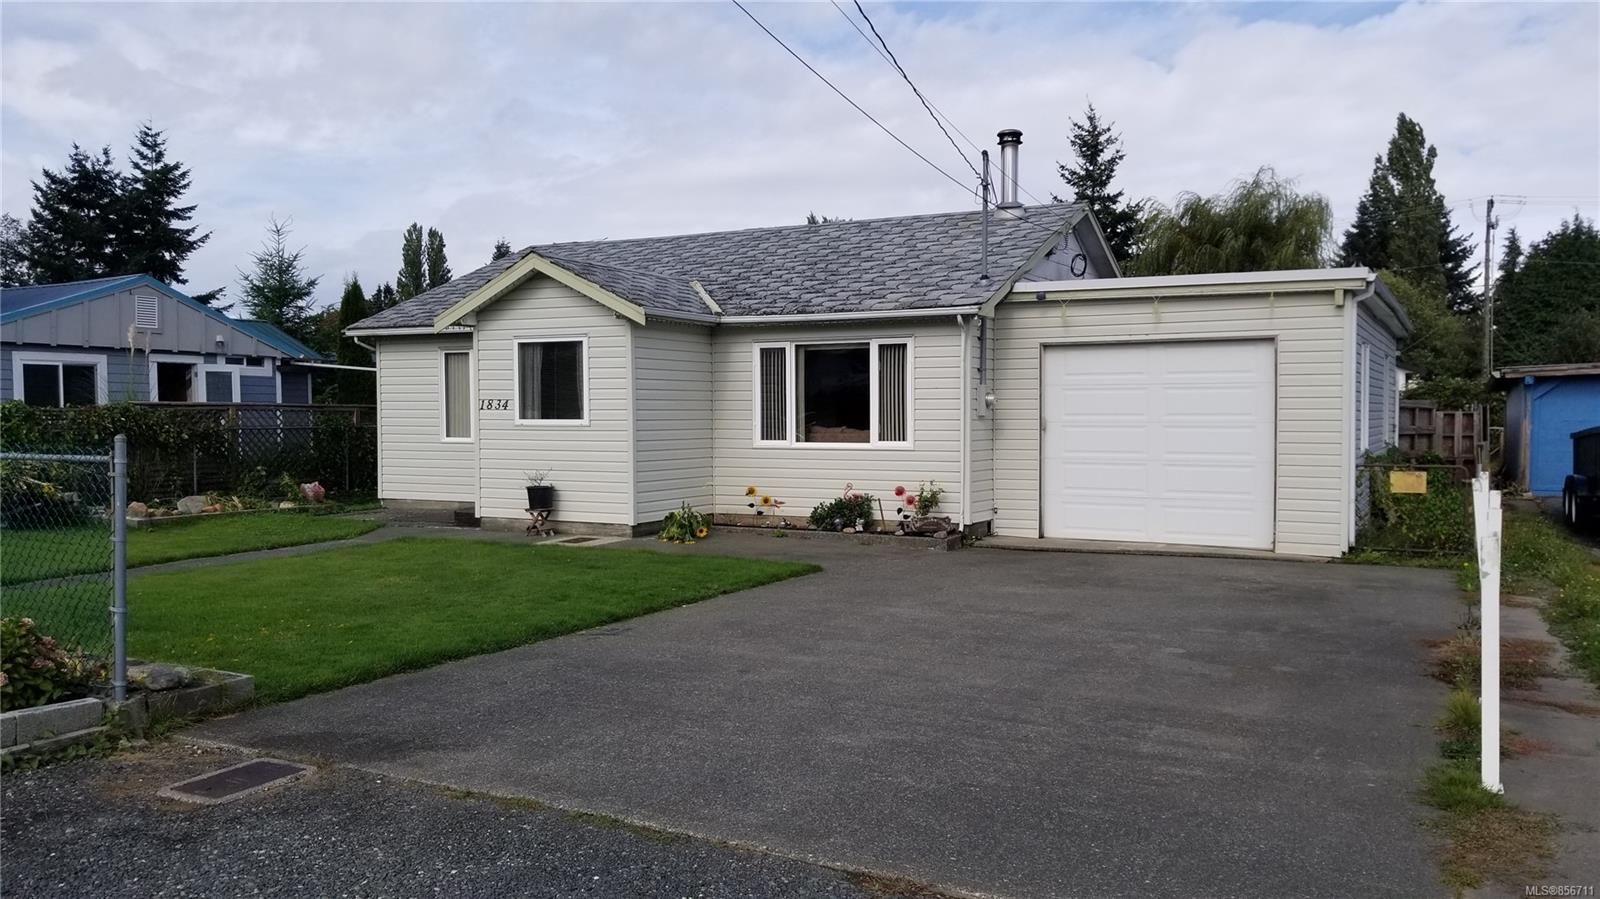 Main Photo: 1834 15th Ave in : CR Campbellton House for sale (Campbell River)  : MLS®# 856711